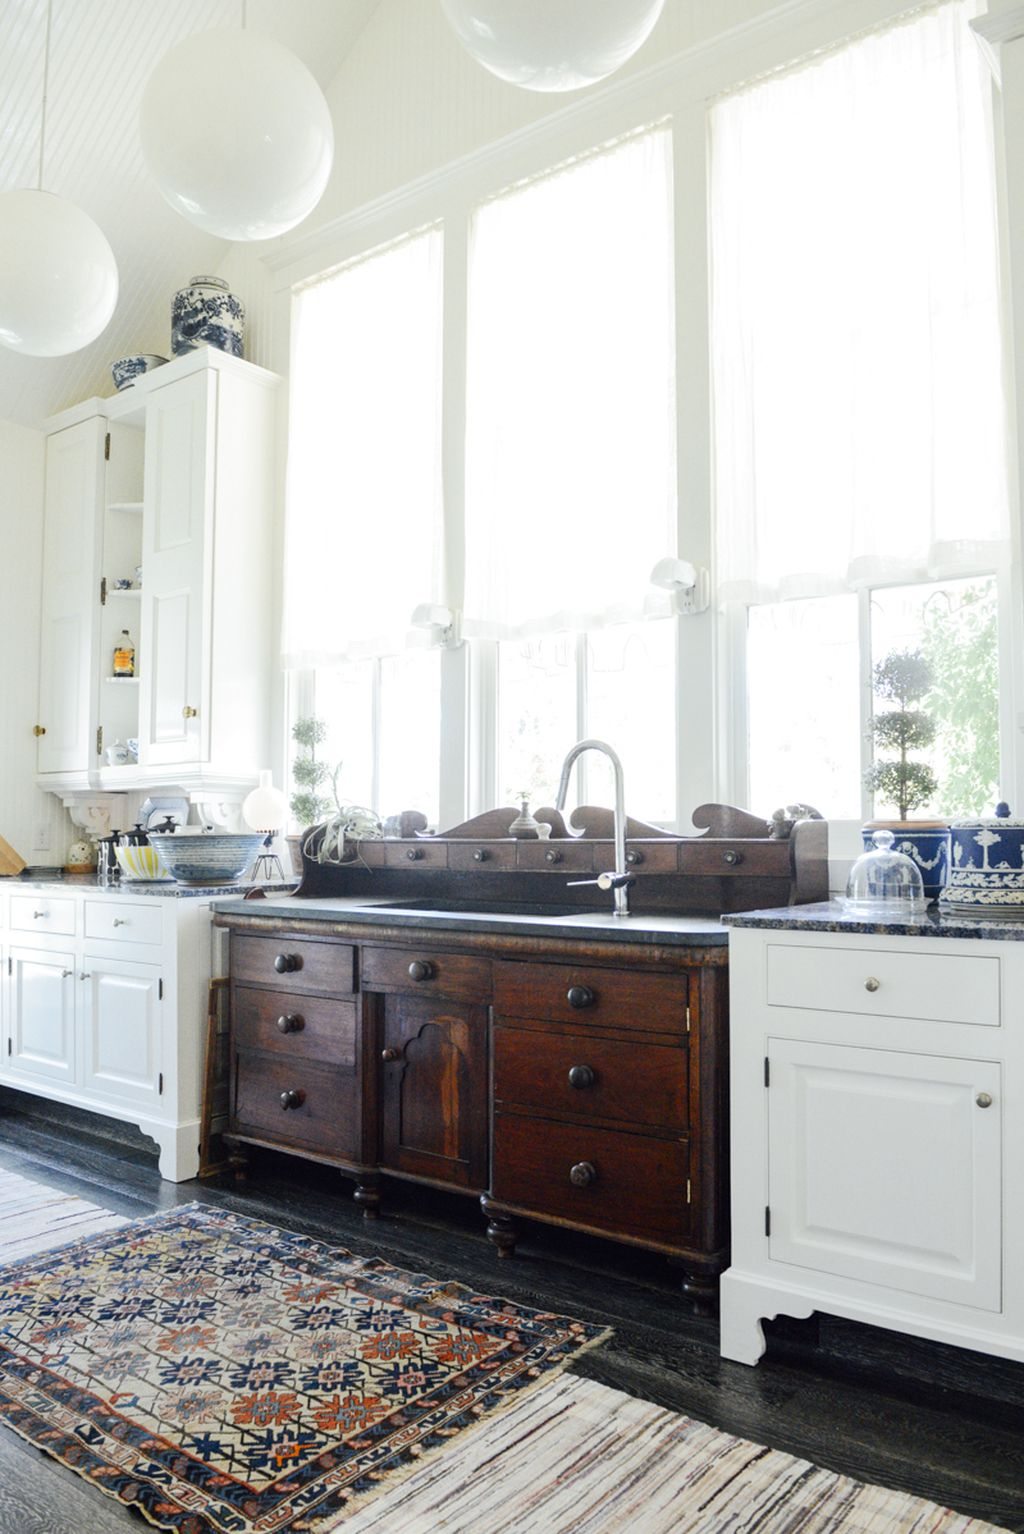 Inspiring Traditional Victorian Kitchen Remodel Ideas 02